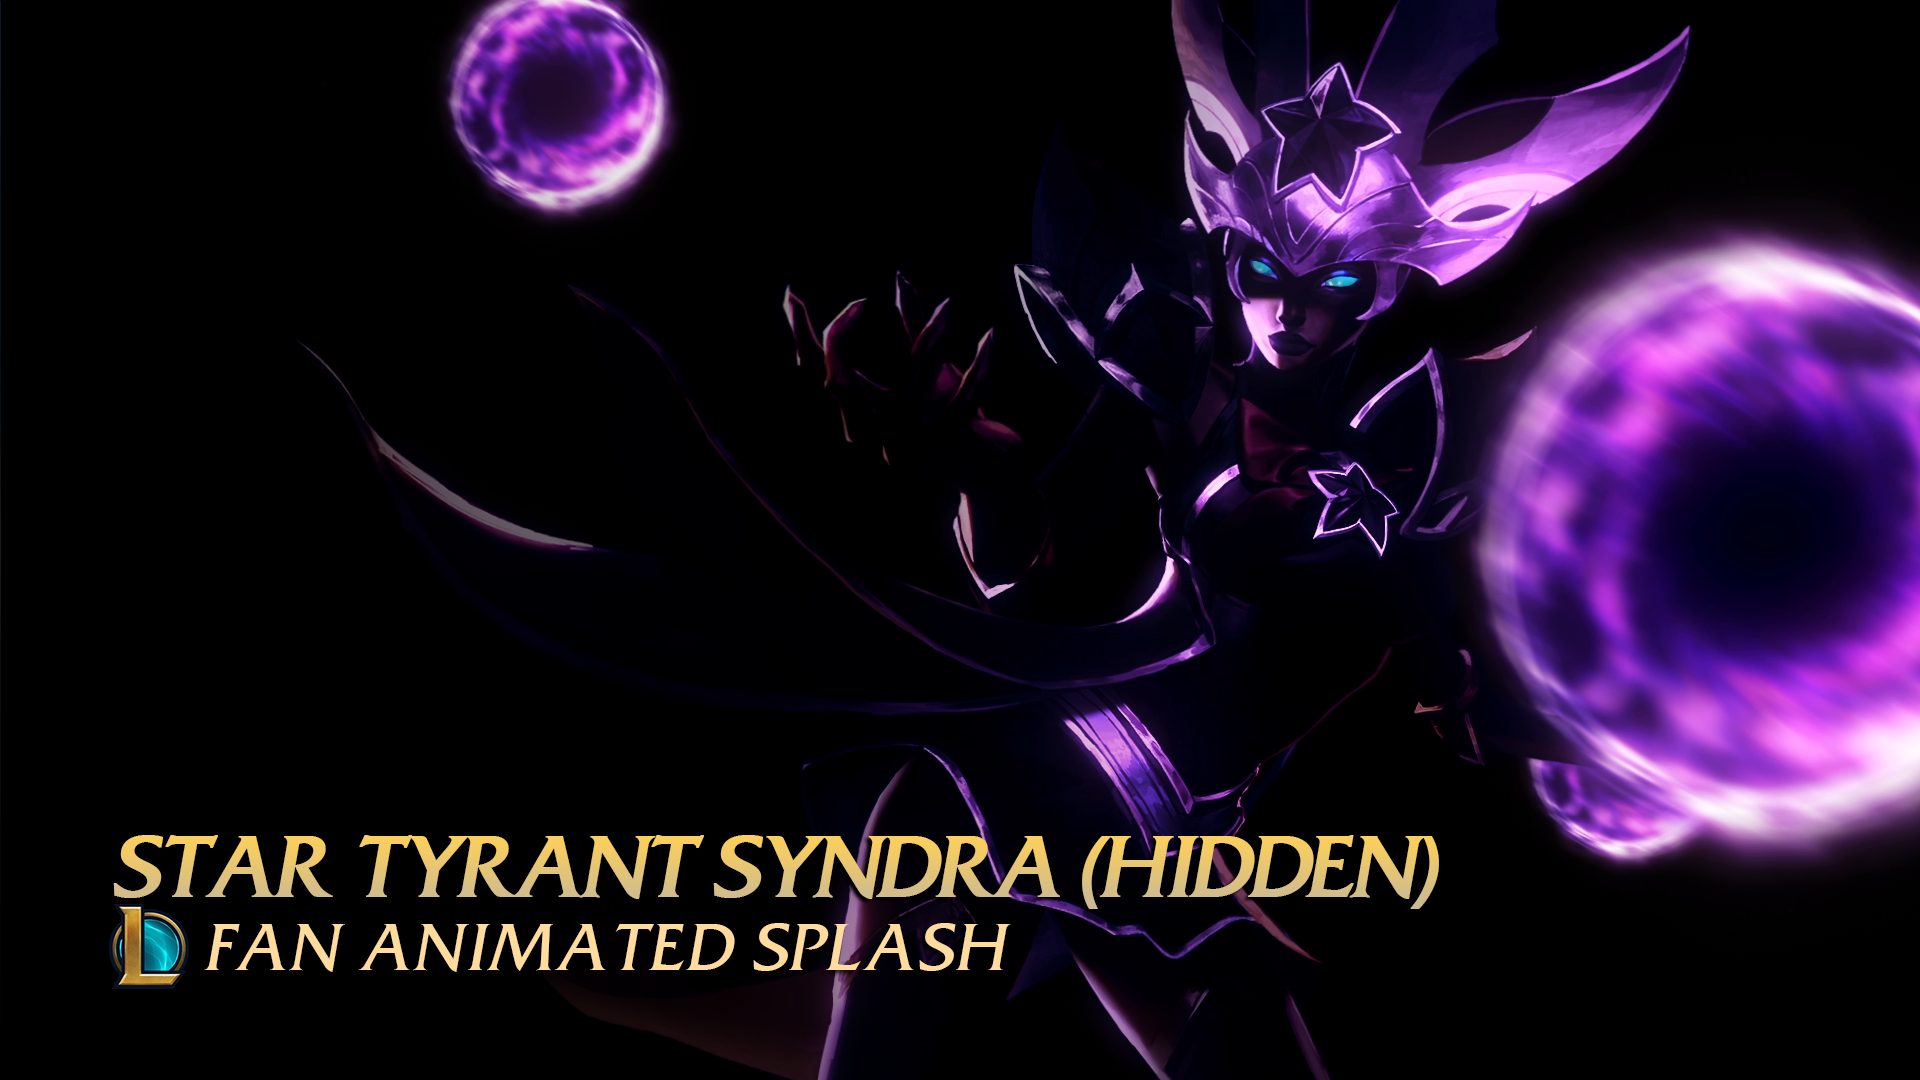 Star Tyrant Syndra Wallpaper Engine